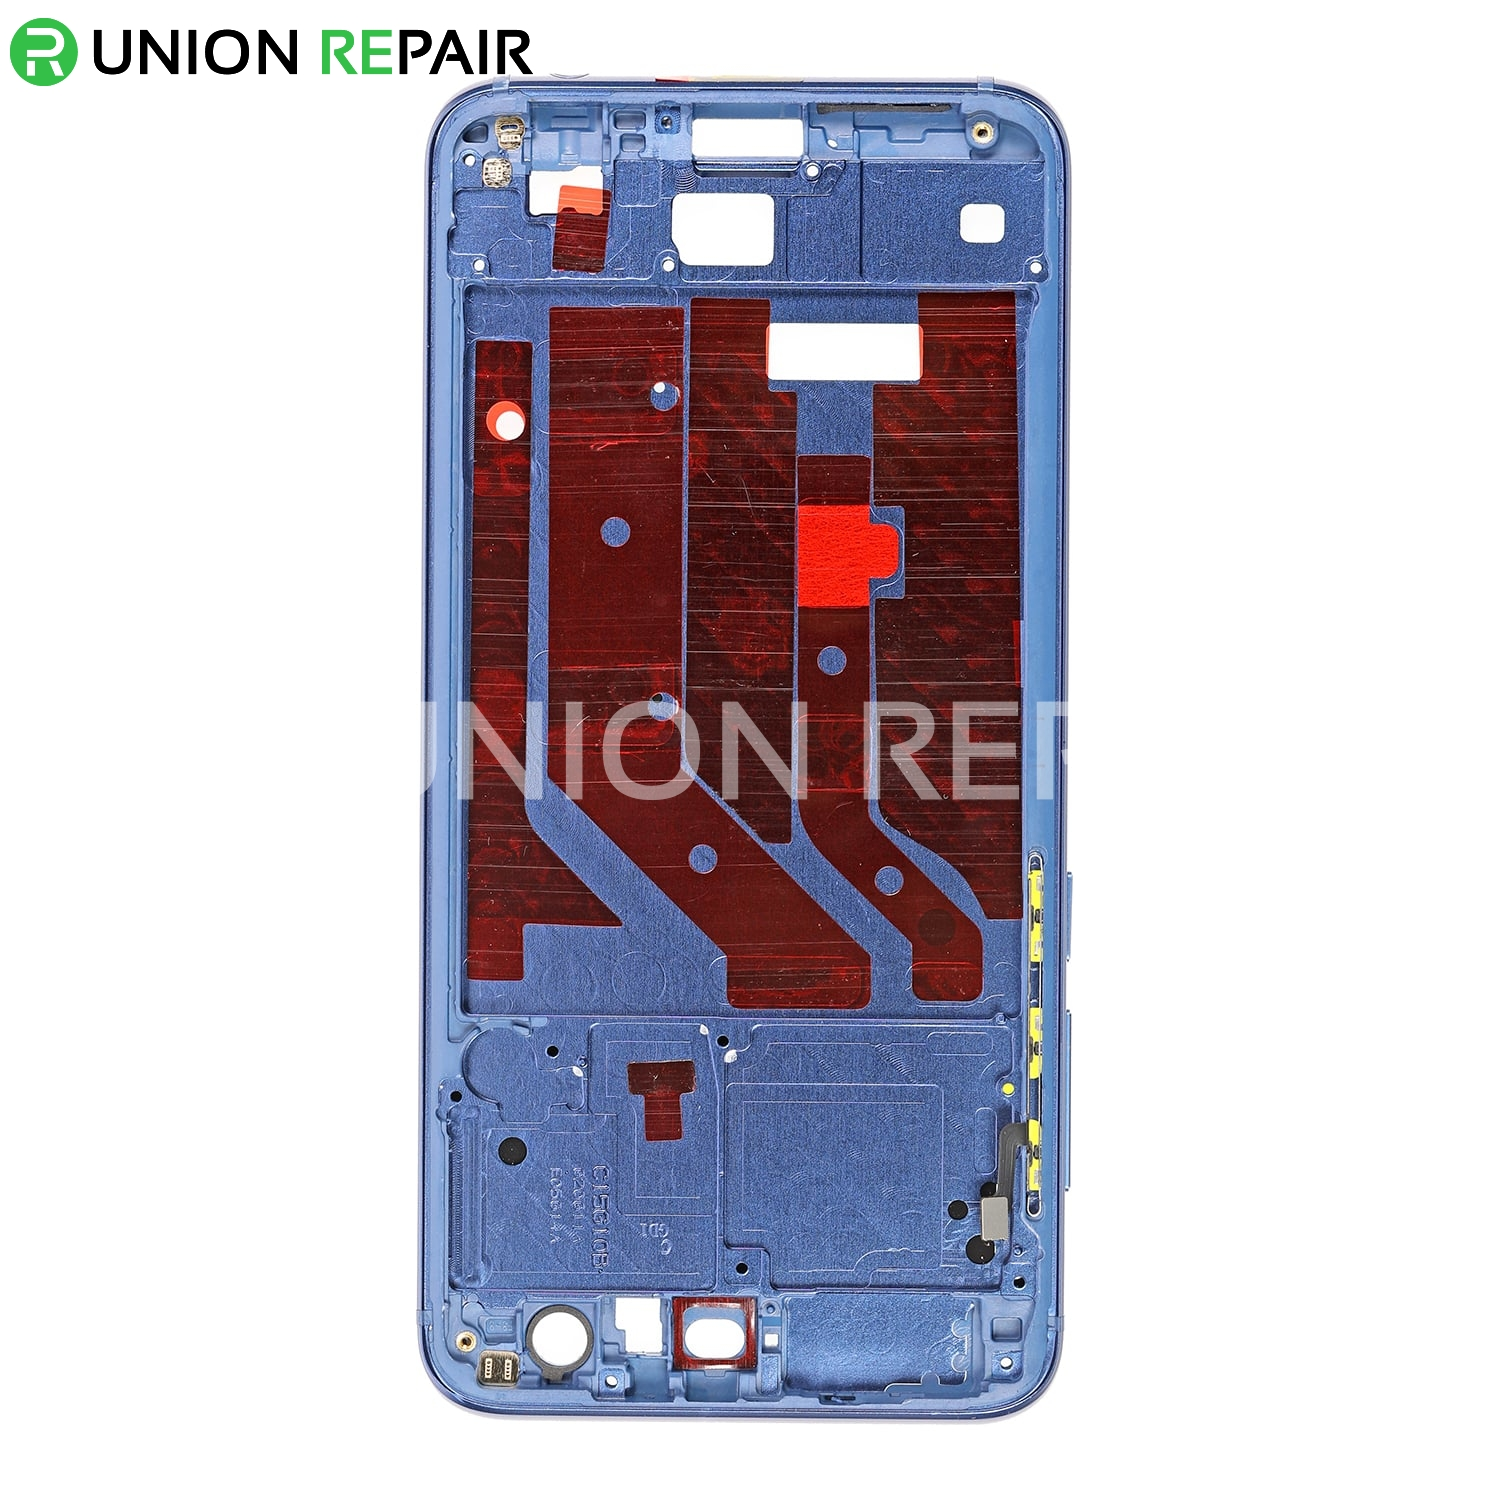 Replacement for Huawei Honor 9 Rear Housing - Blue